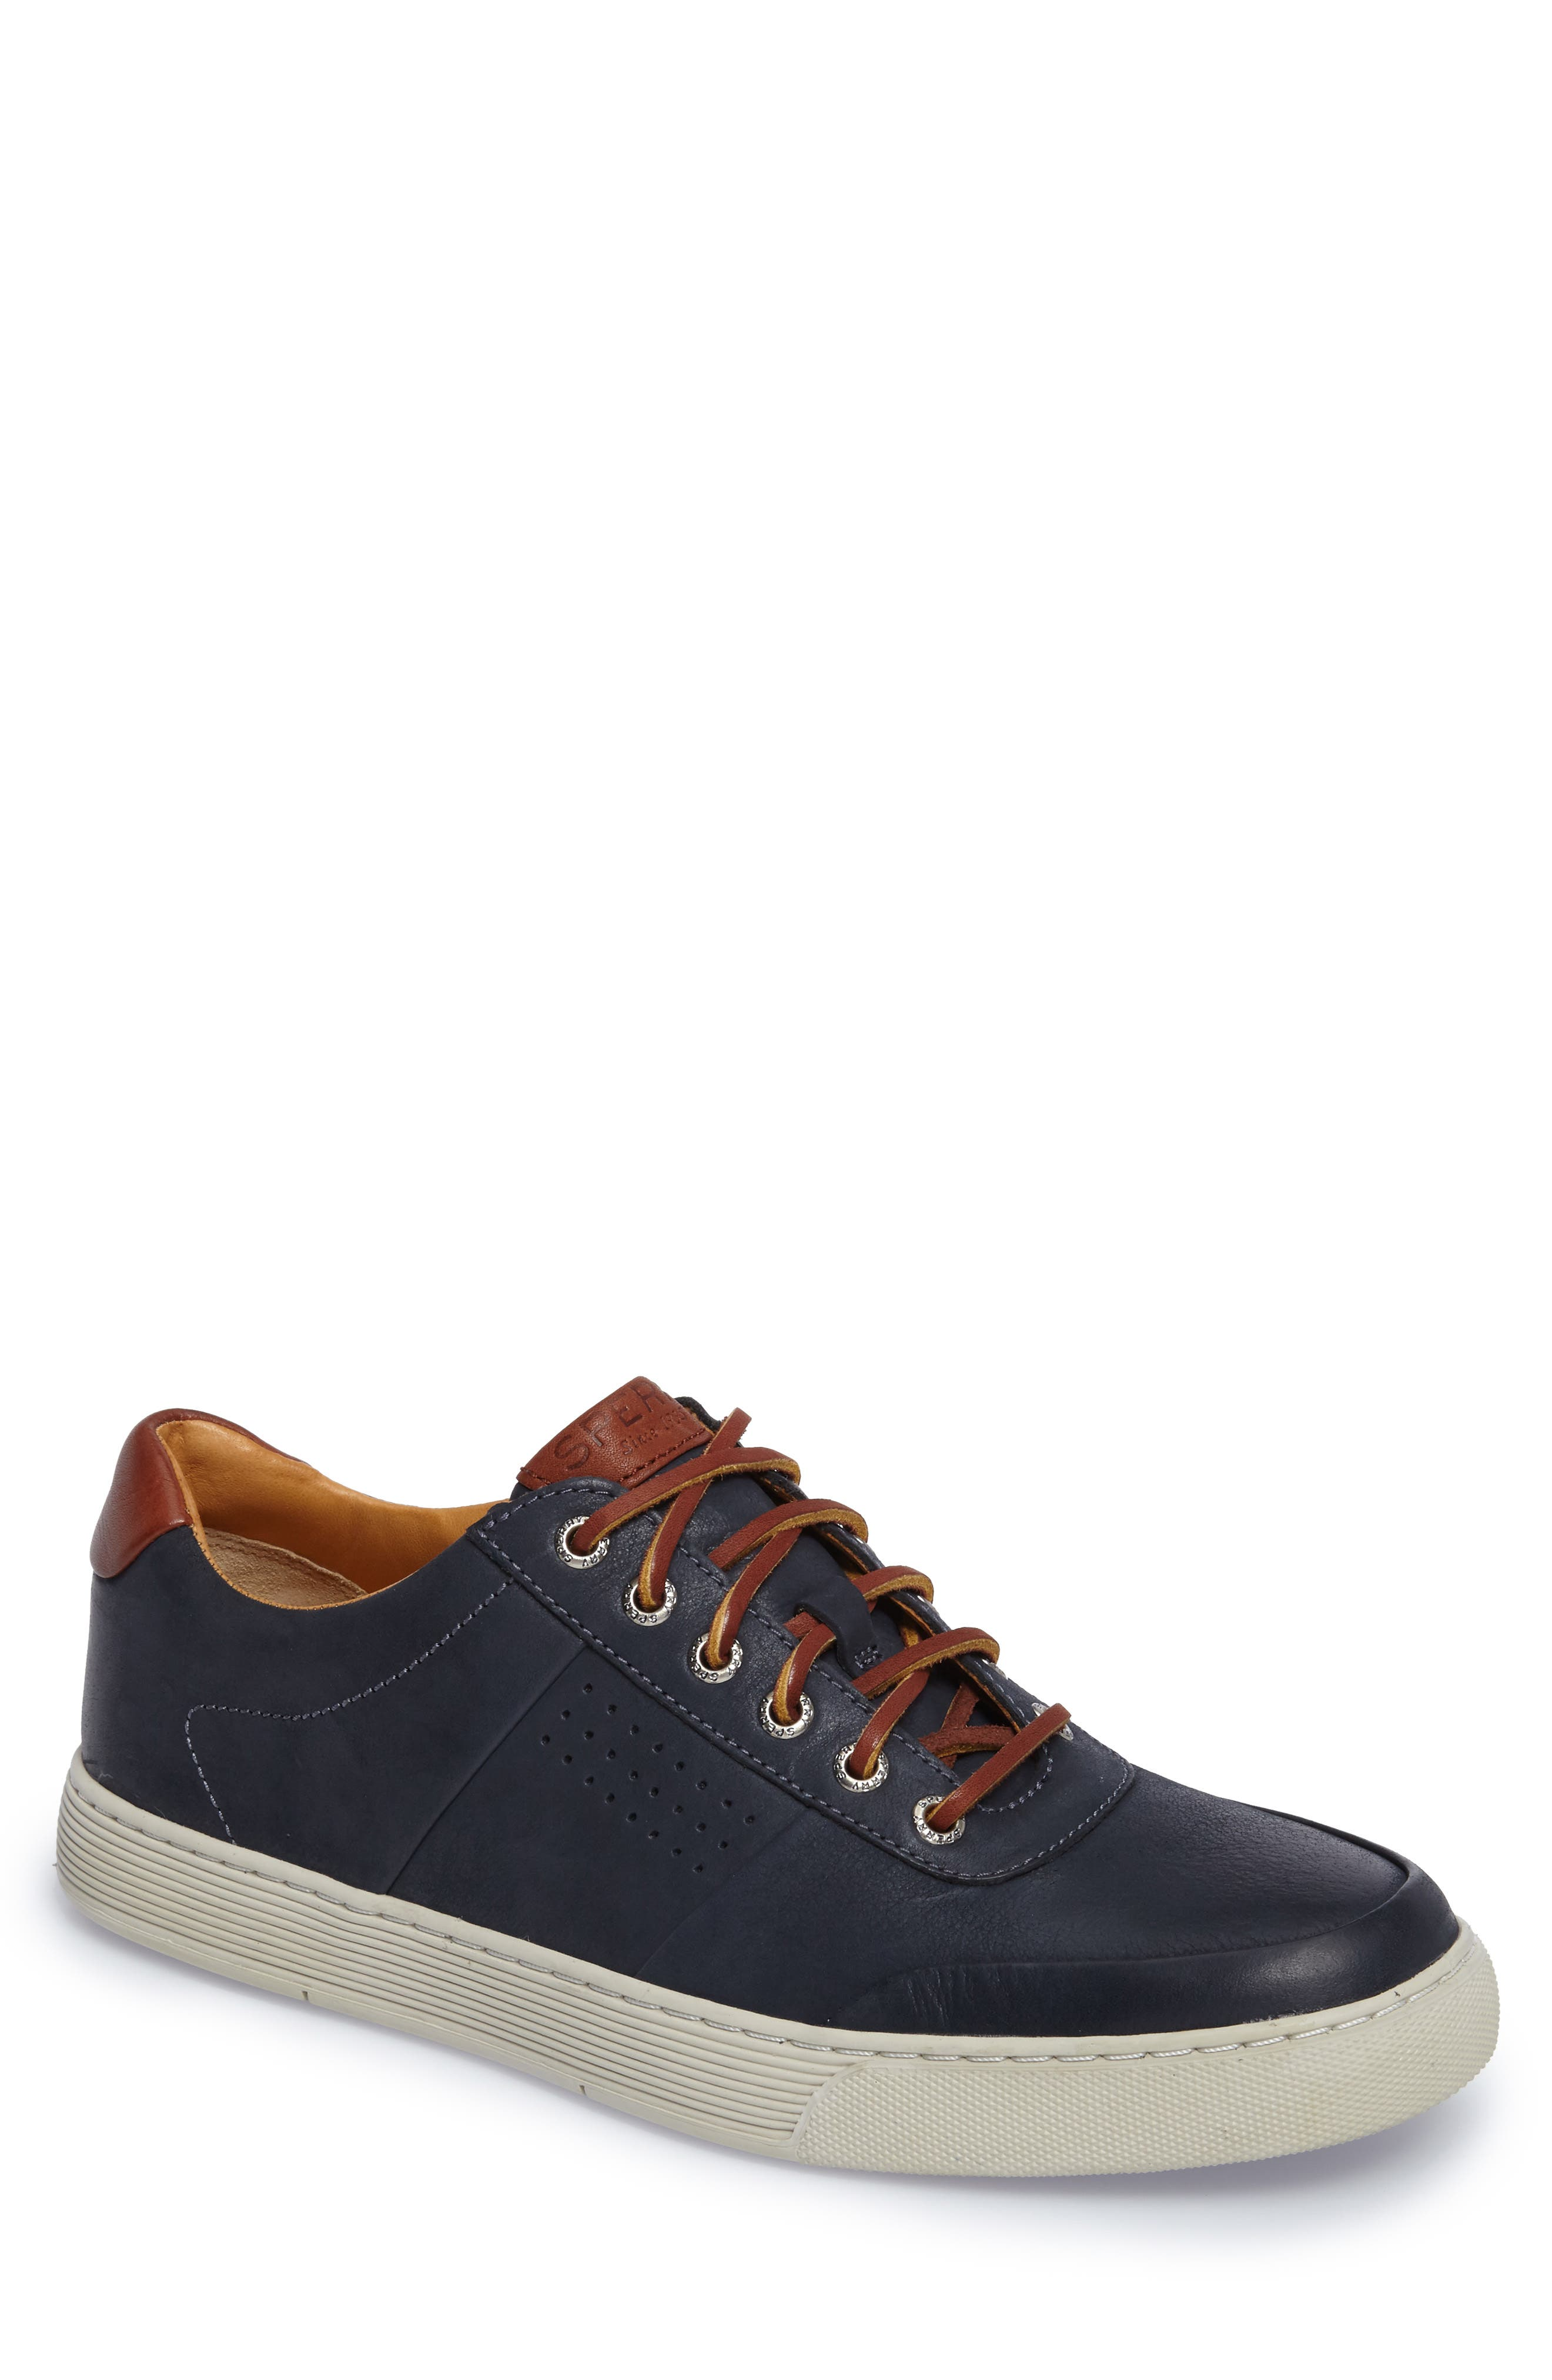 Gold Cup Sport Sneaker,                         Main,                         color, 410